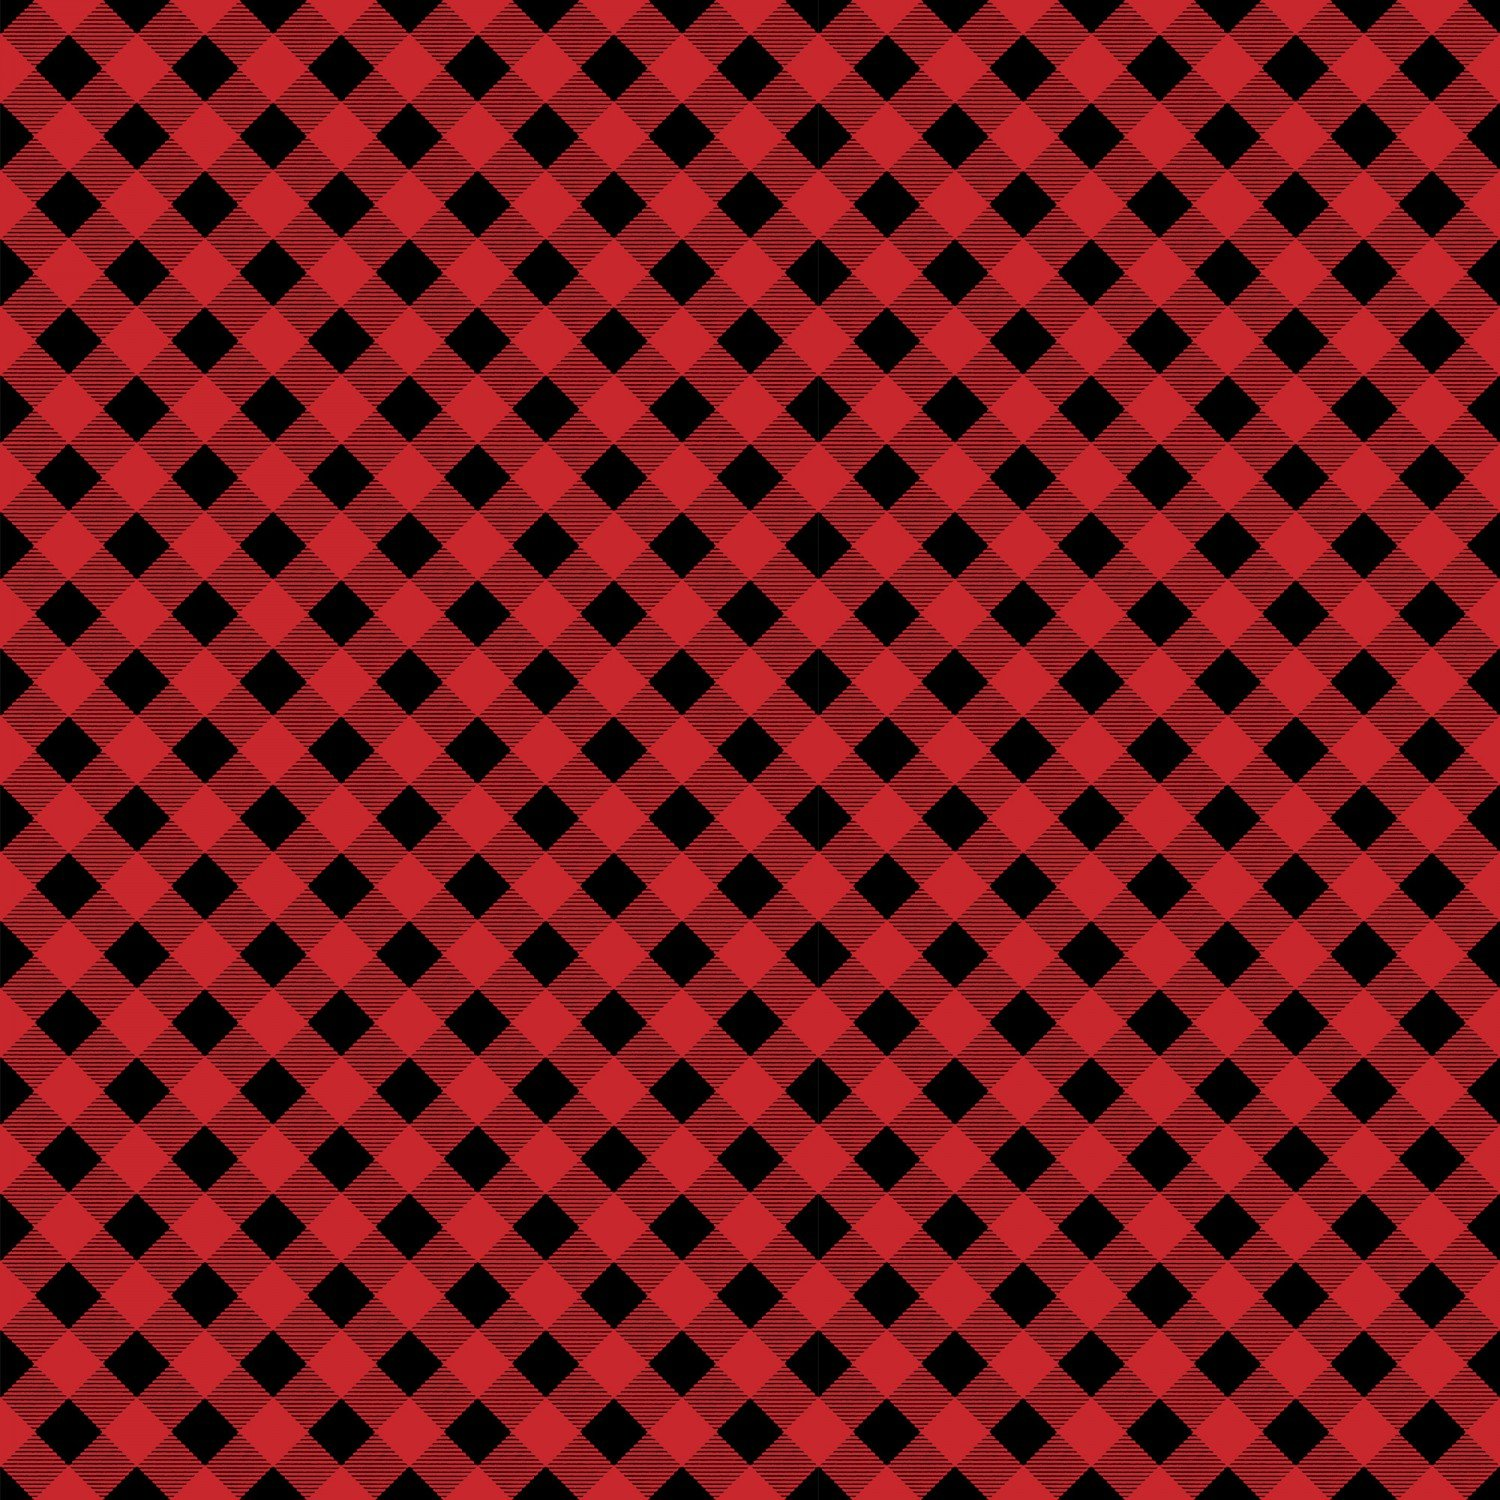 *3* 6/17 82522 339 Plaid for the Holiday